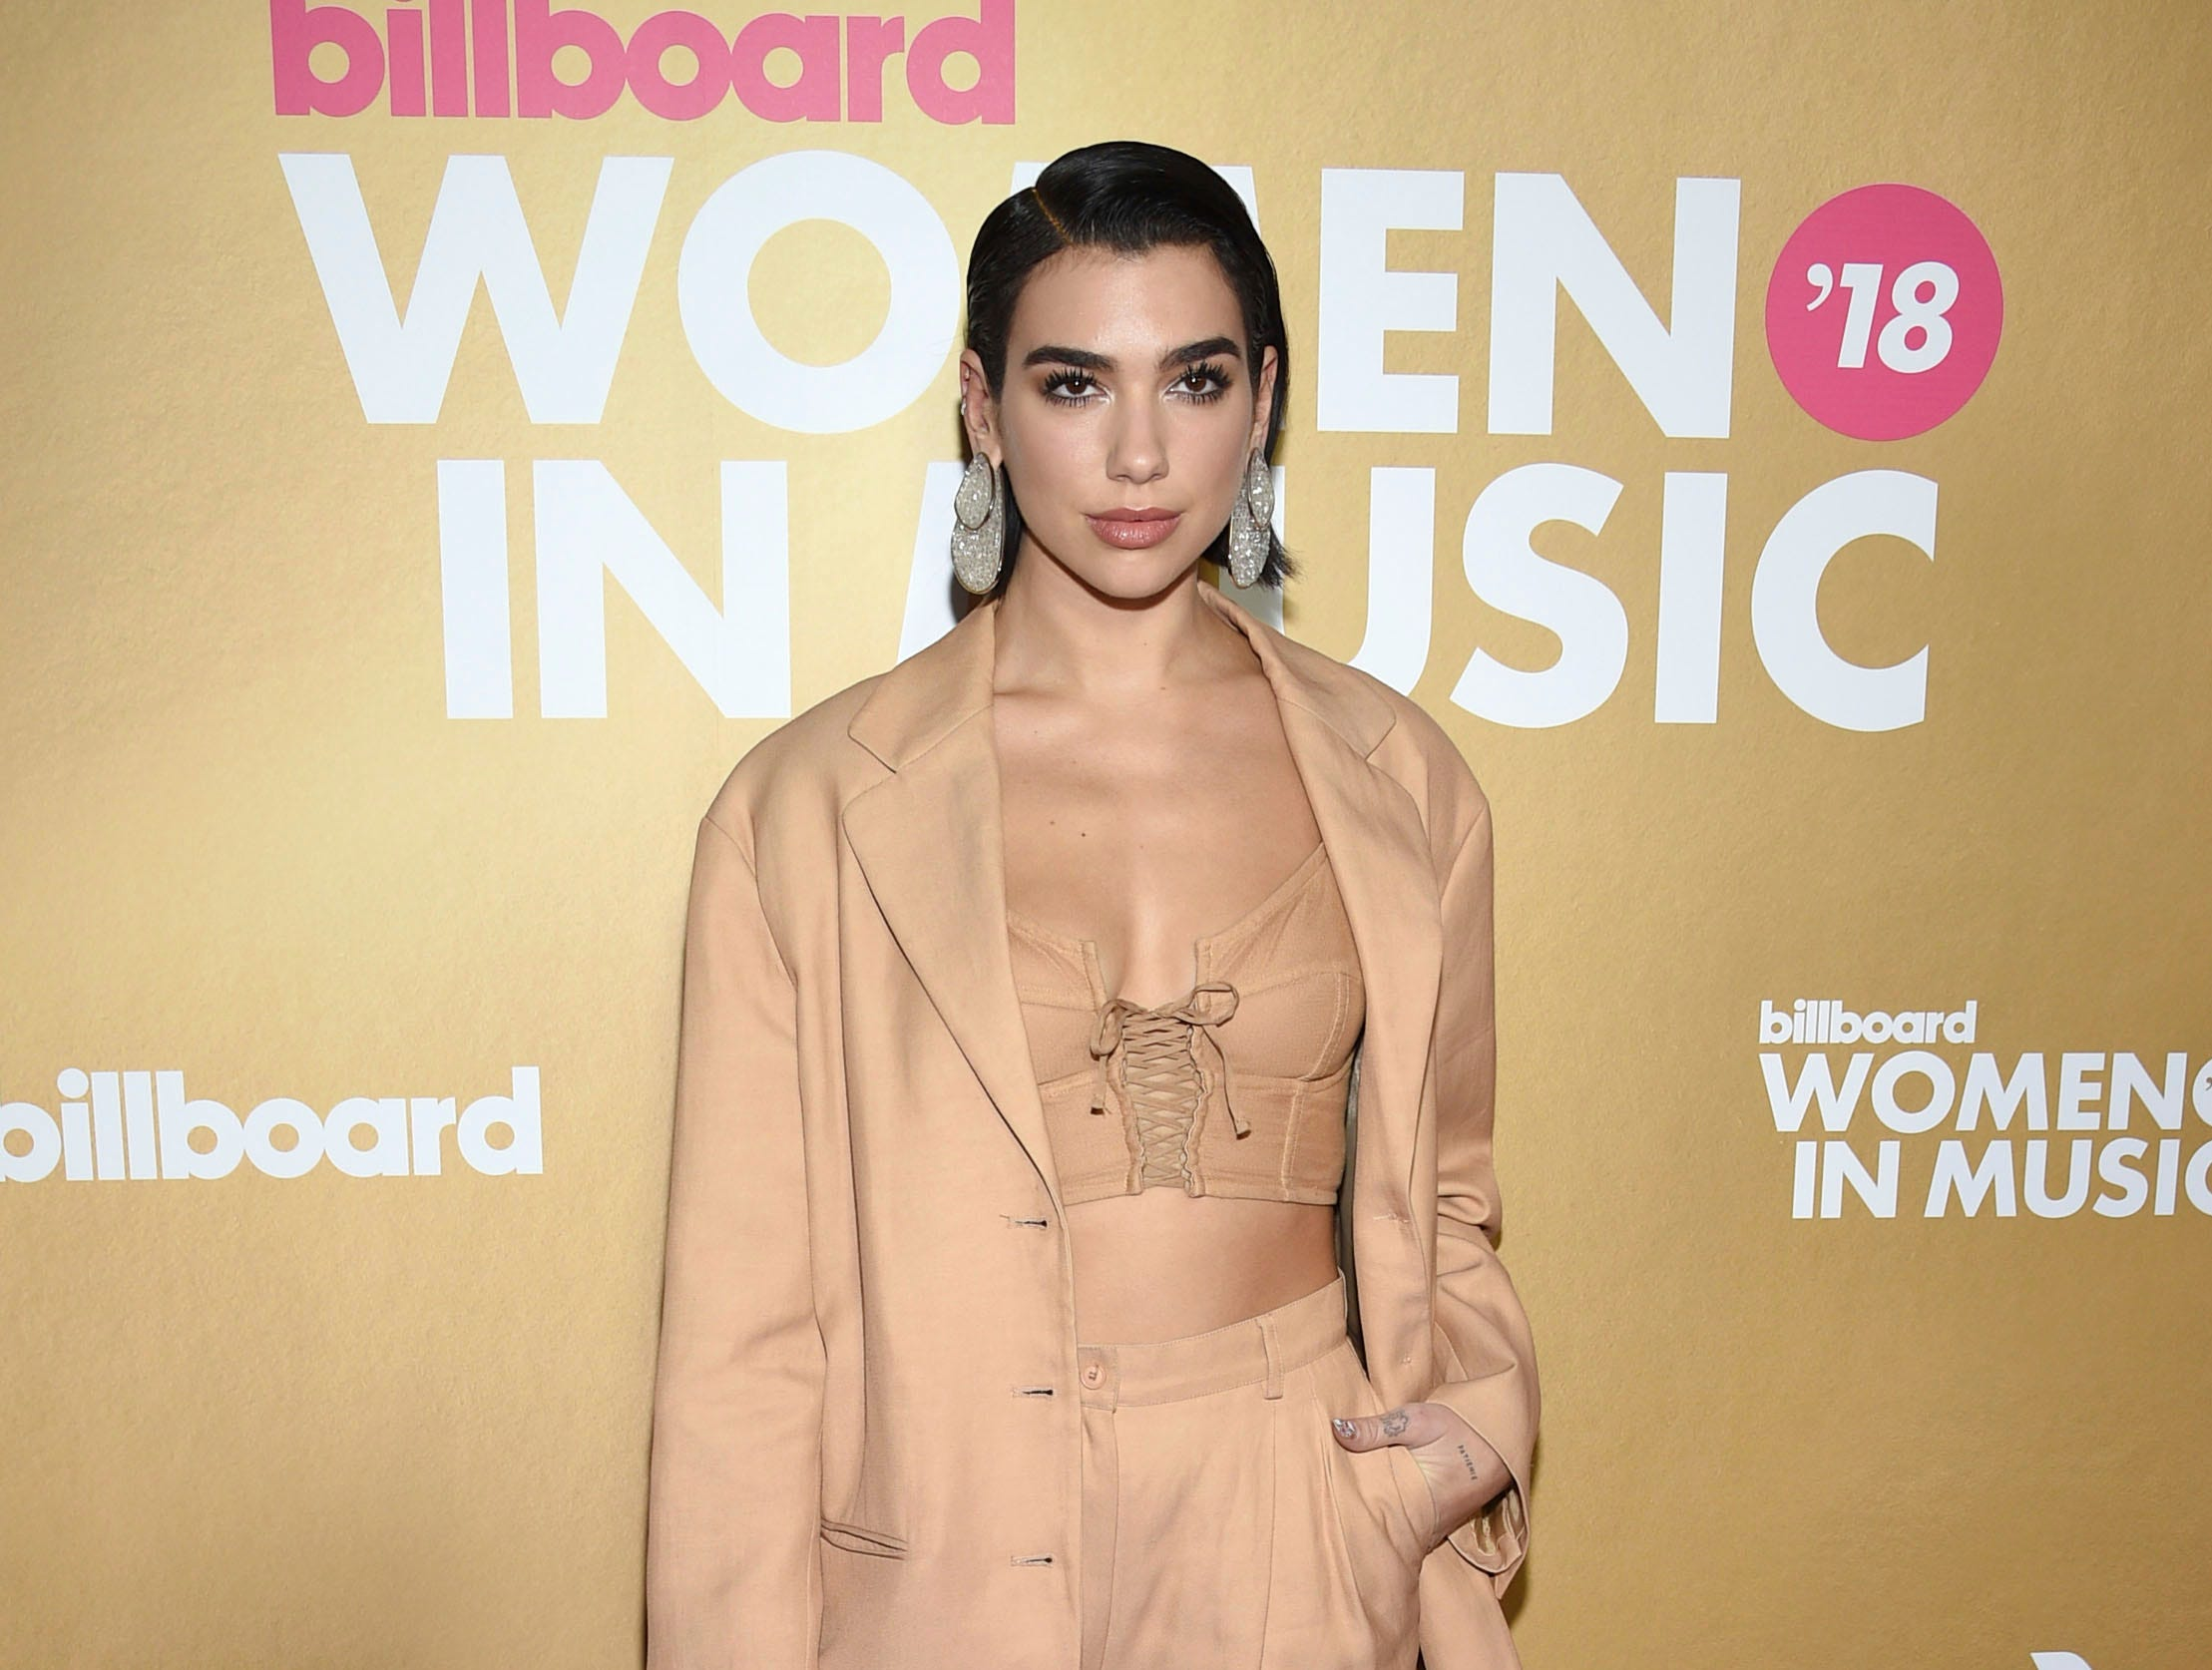 Dua Lipa attends the 13th annual Billboard Women in Music event at Pier 36 on Thursday, Dec. 6, 2018, in New York. (Photo by Evan Agostini/Invision/AP) ORG XMIT: CABR104